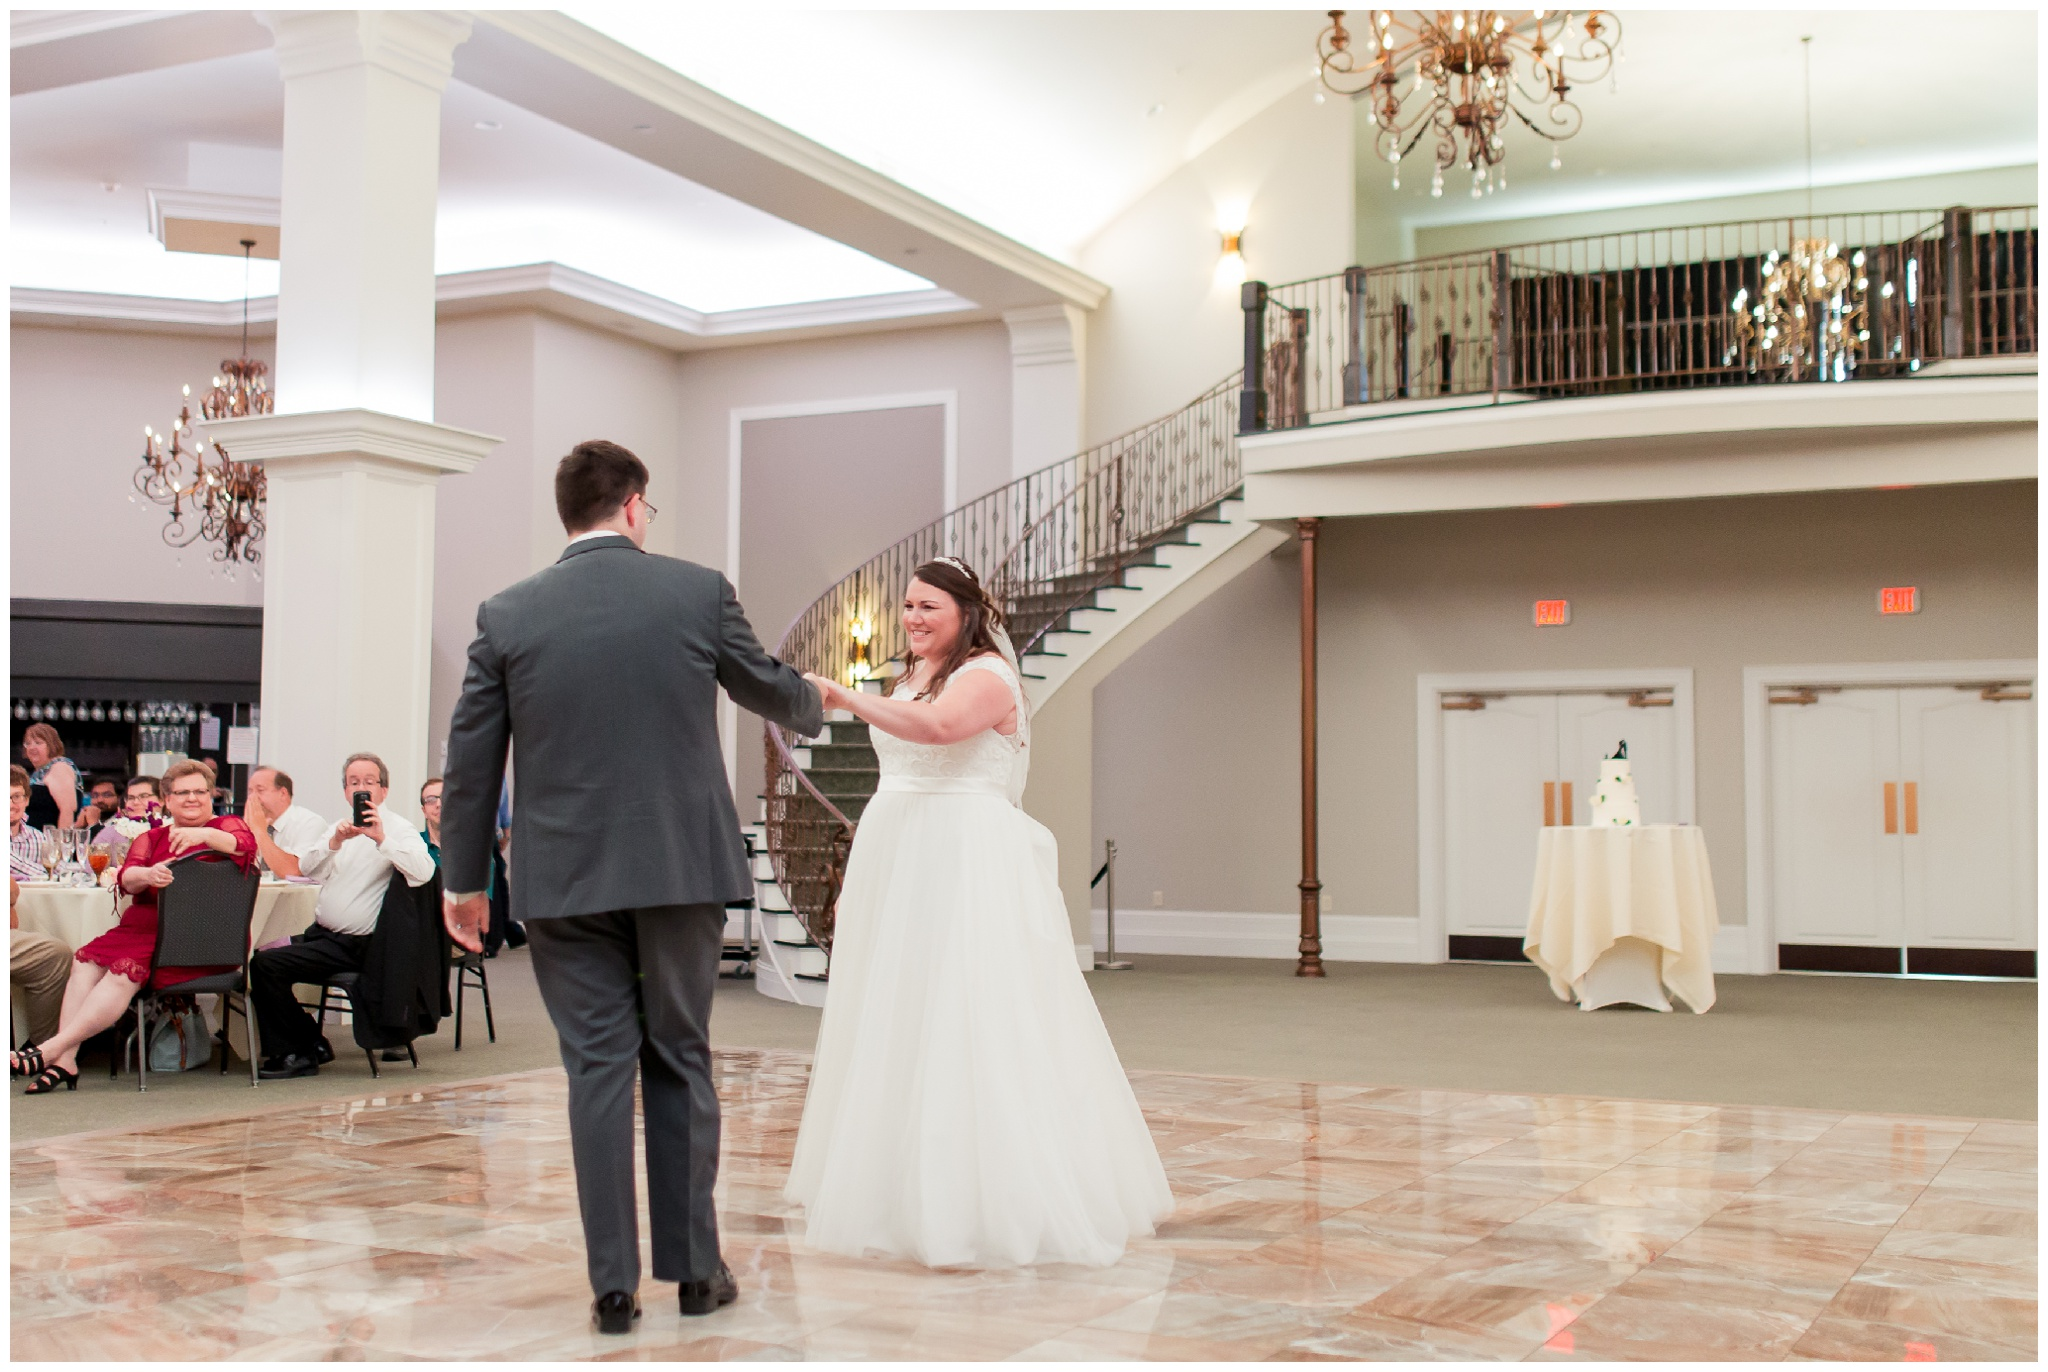 bride and groom first dance at Bel Air Events Kokomo Indiana